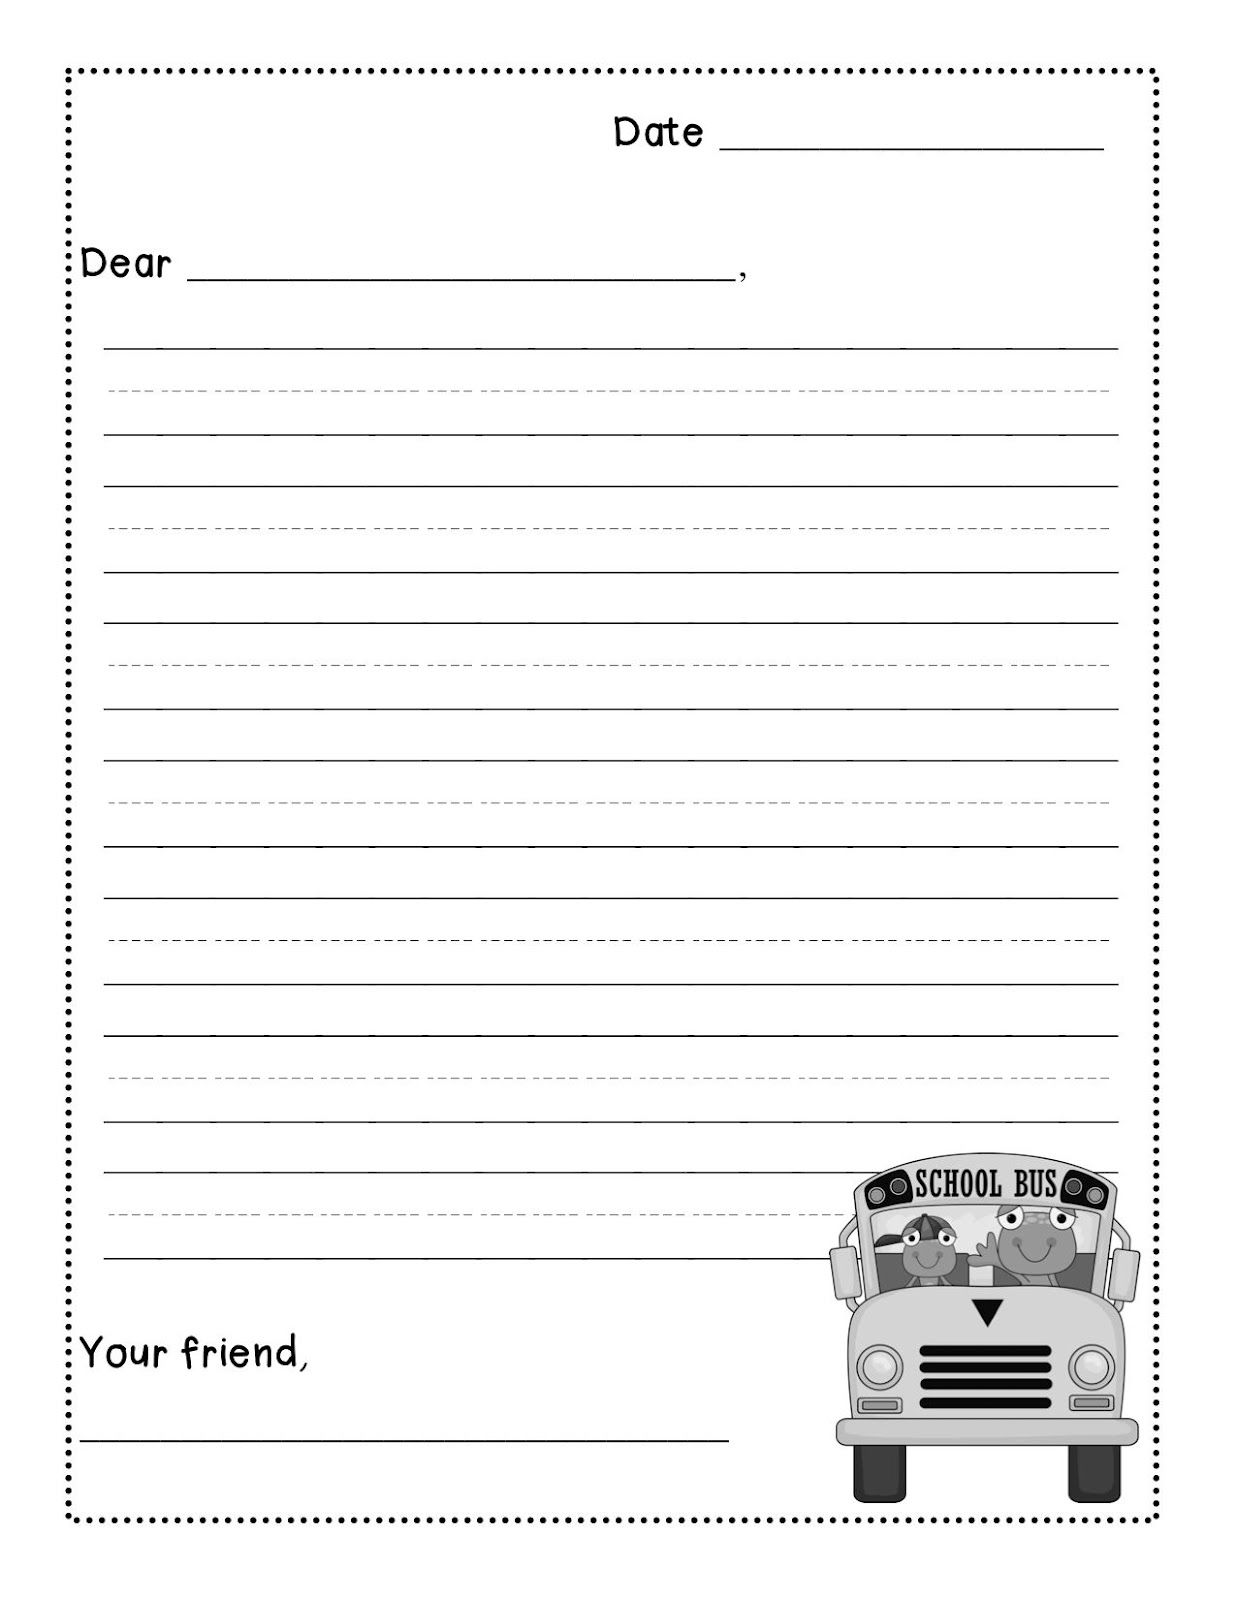 Friendly Letter Format Elementary School. Friendly Letter Writing Freebie  levelized templates up for grabs